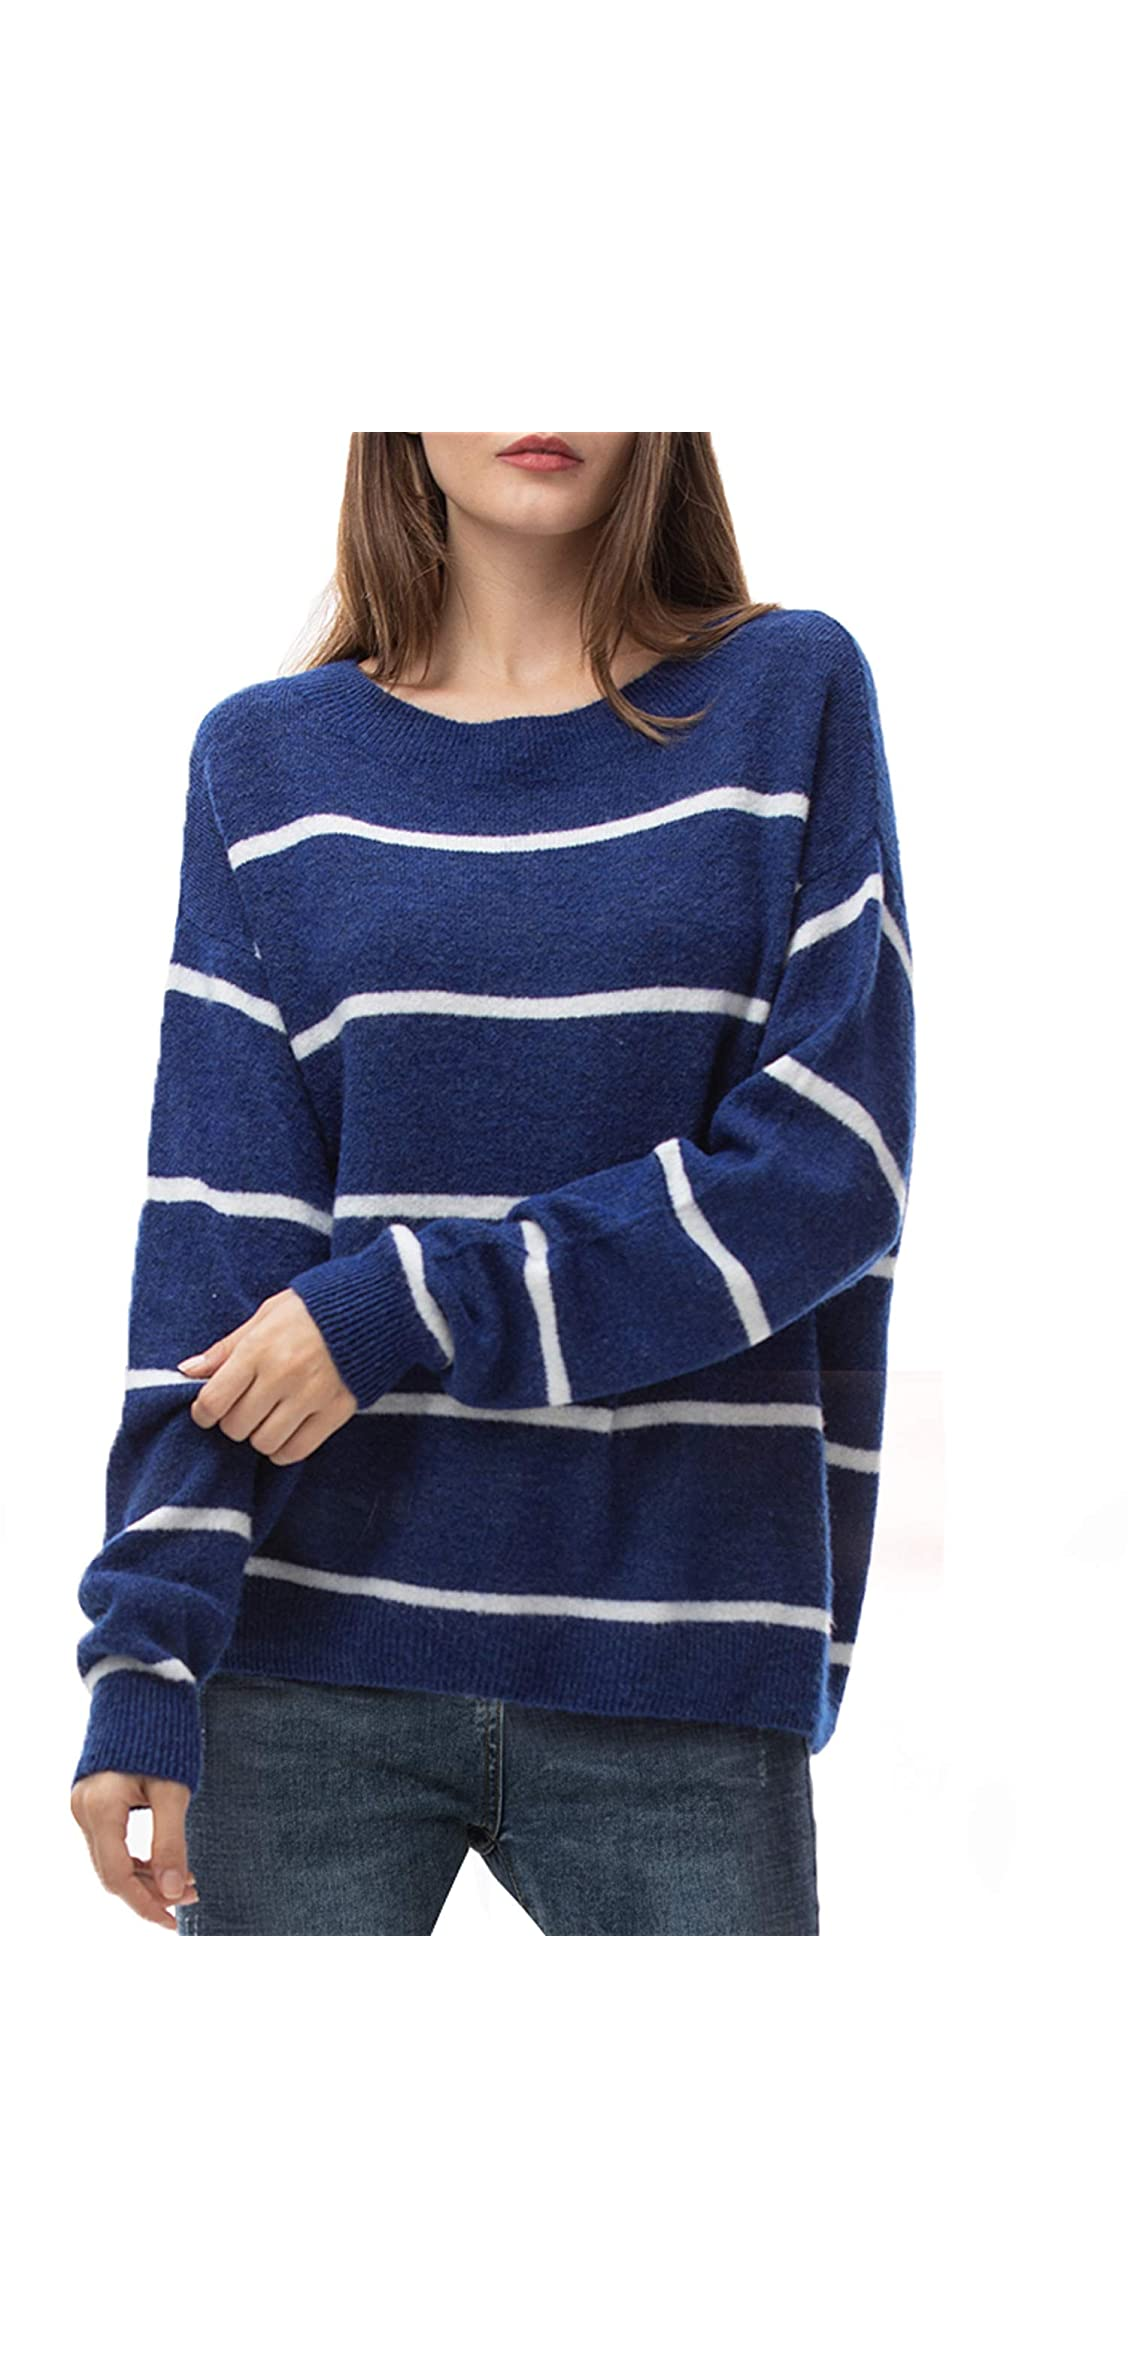 Women's Oversized Loose Sweater Crew Neck Pullover